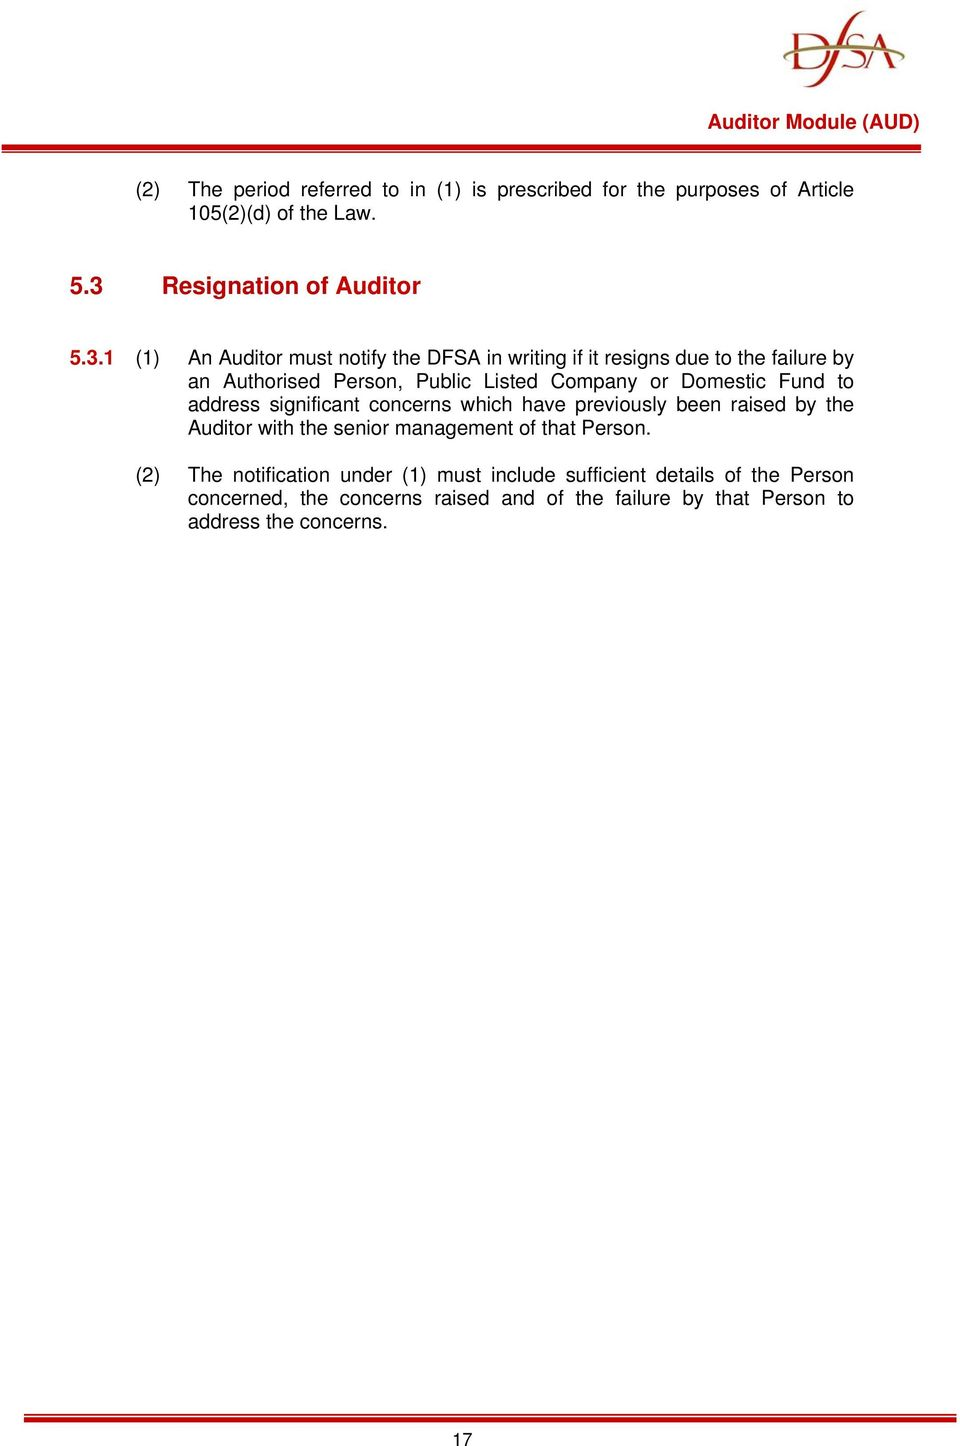 1 (1) An Auditor must notify the DFSA in writing if it resigns due to the failure by an Authorised Person, Public Listed Company or Domestic